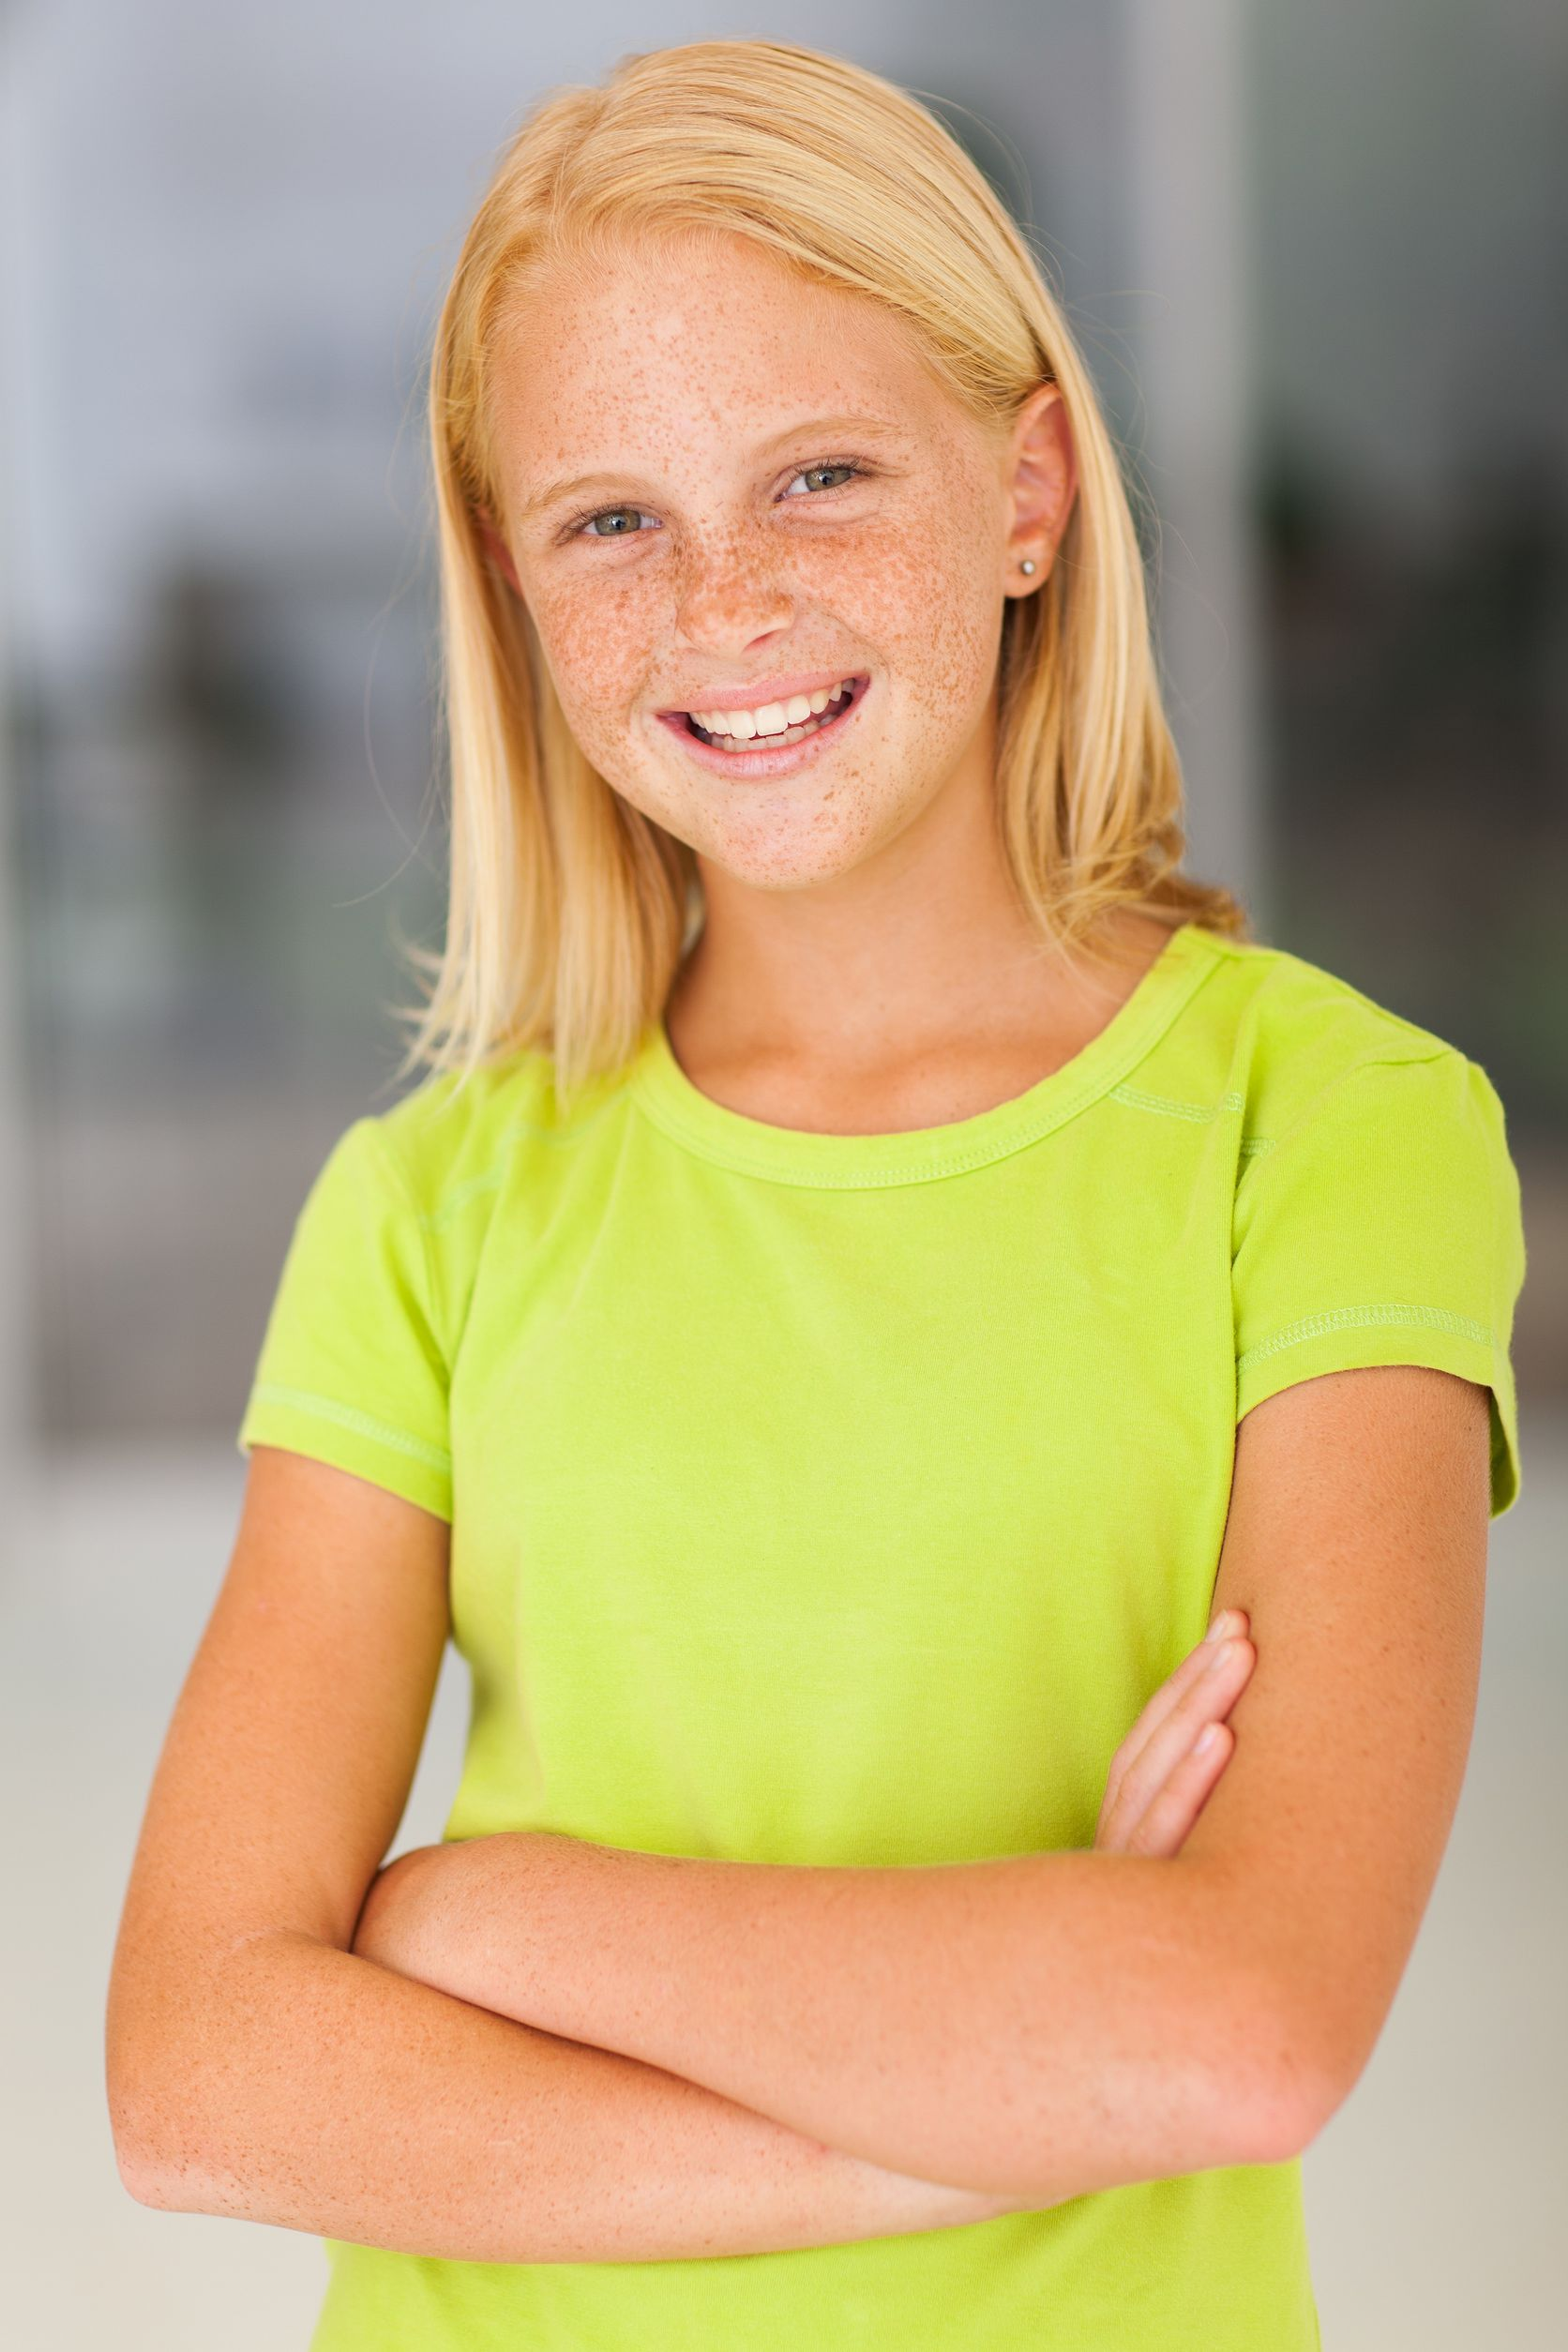 Anaheim Pediatric Dentist